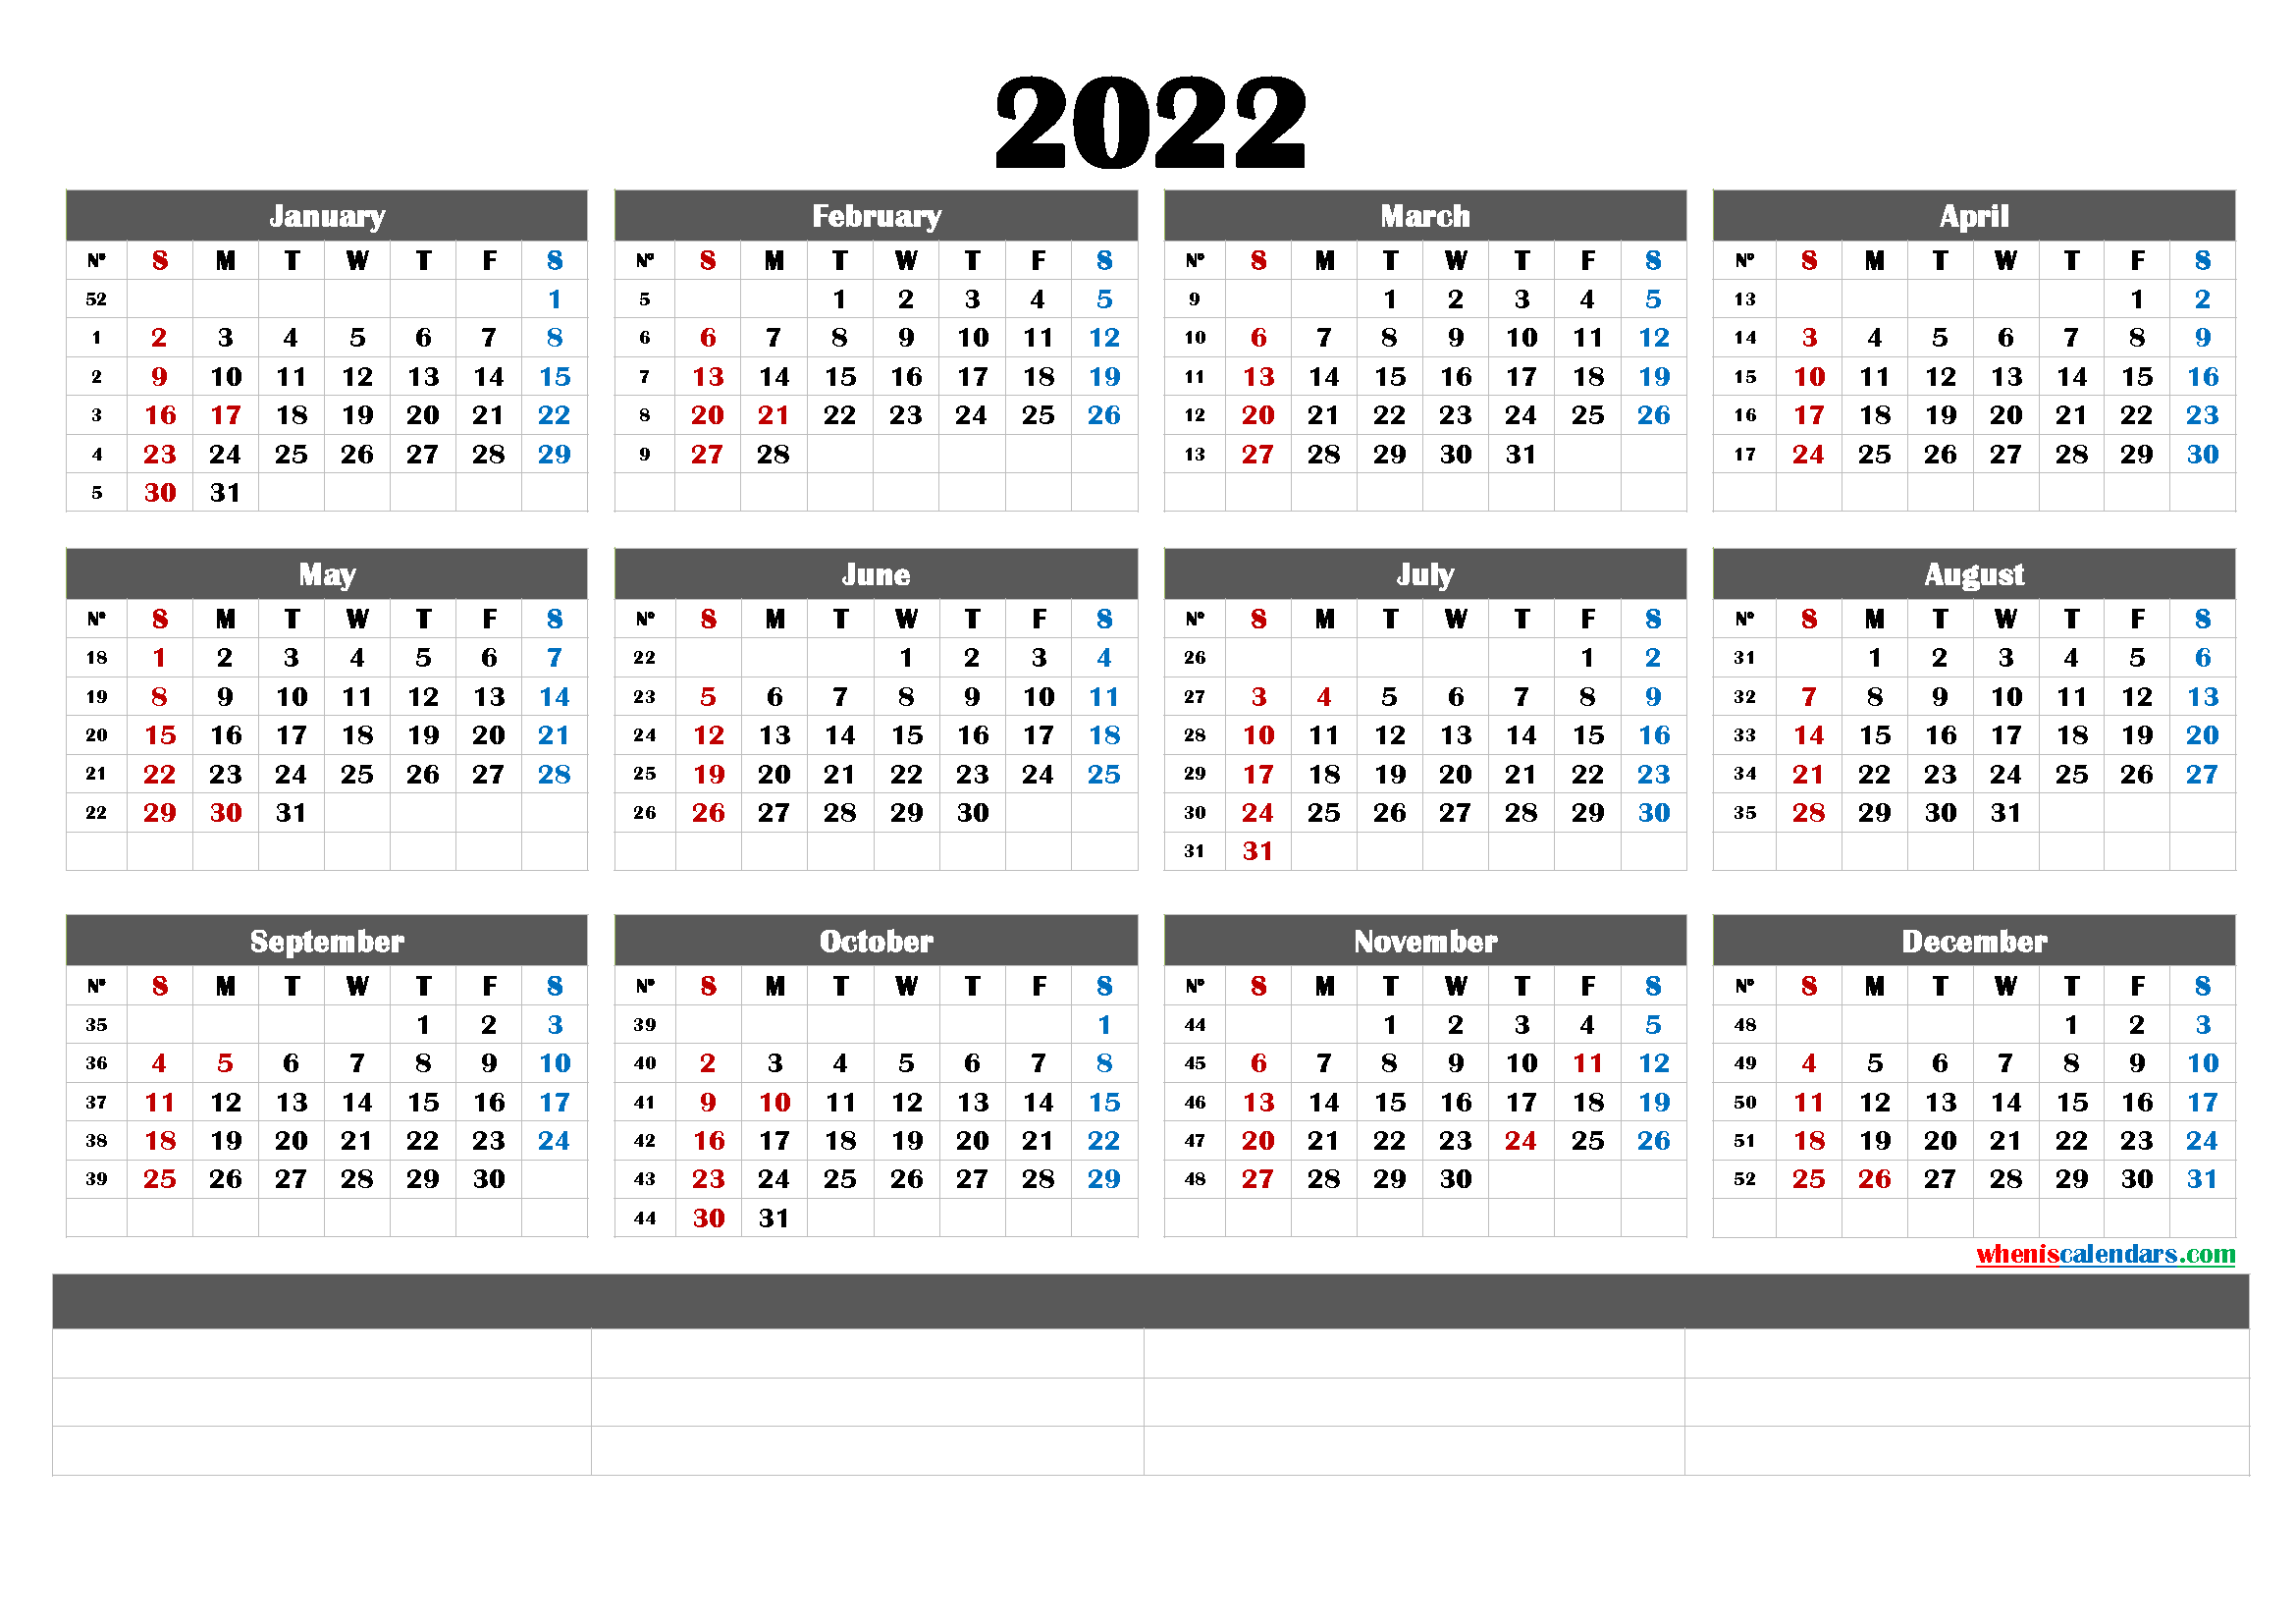 Printable 2022 Calendar by Year (6 Templates) - Free ...